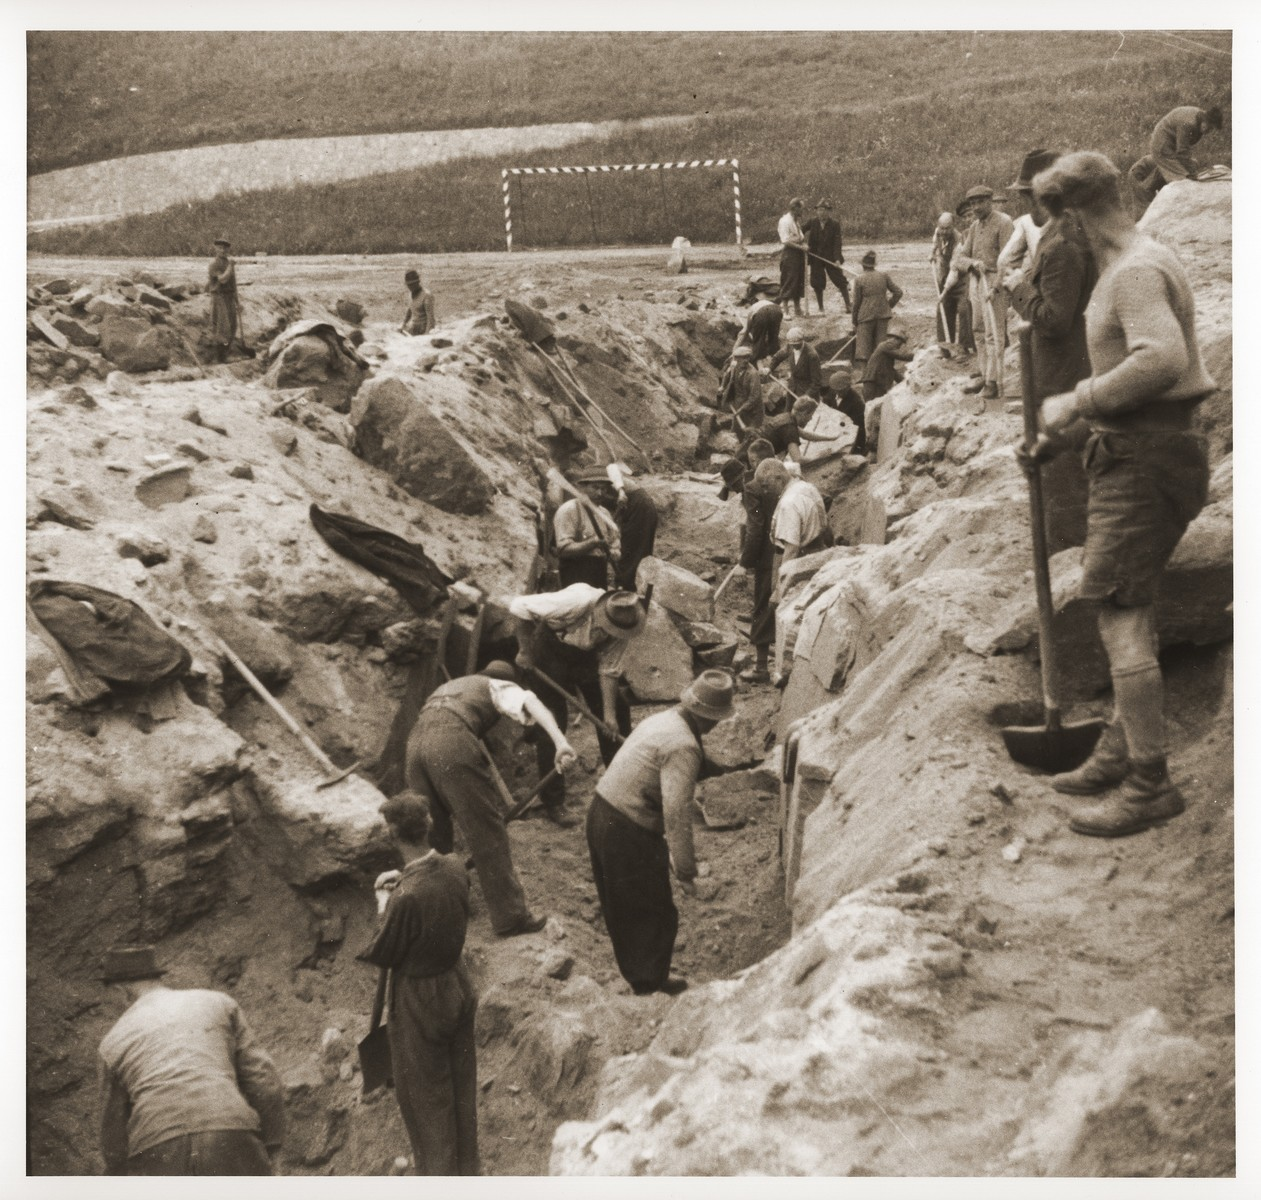 Austrian civilians dig a mass grave in the former SS soccer field in the Mauthausen concentration camp to bury the bodies of former inmates.